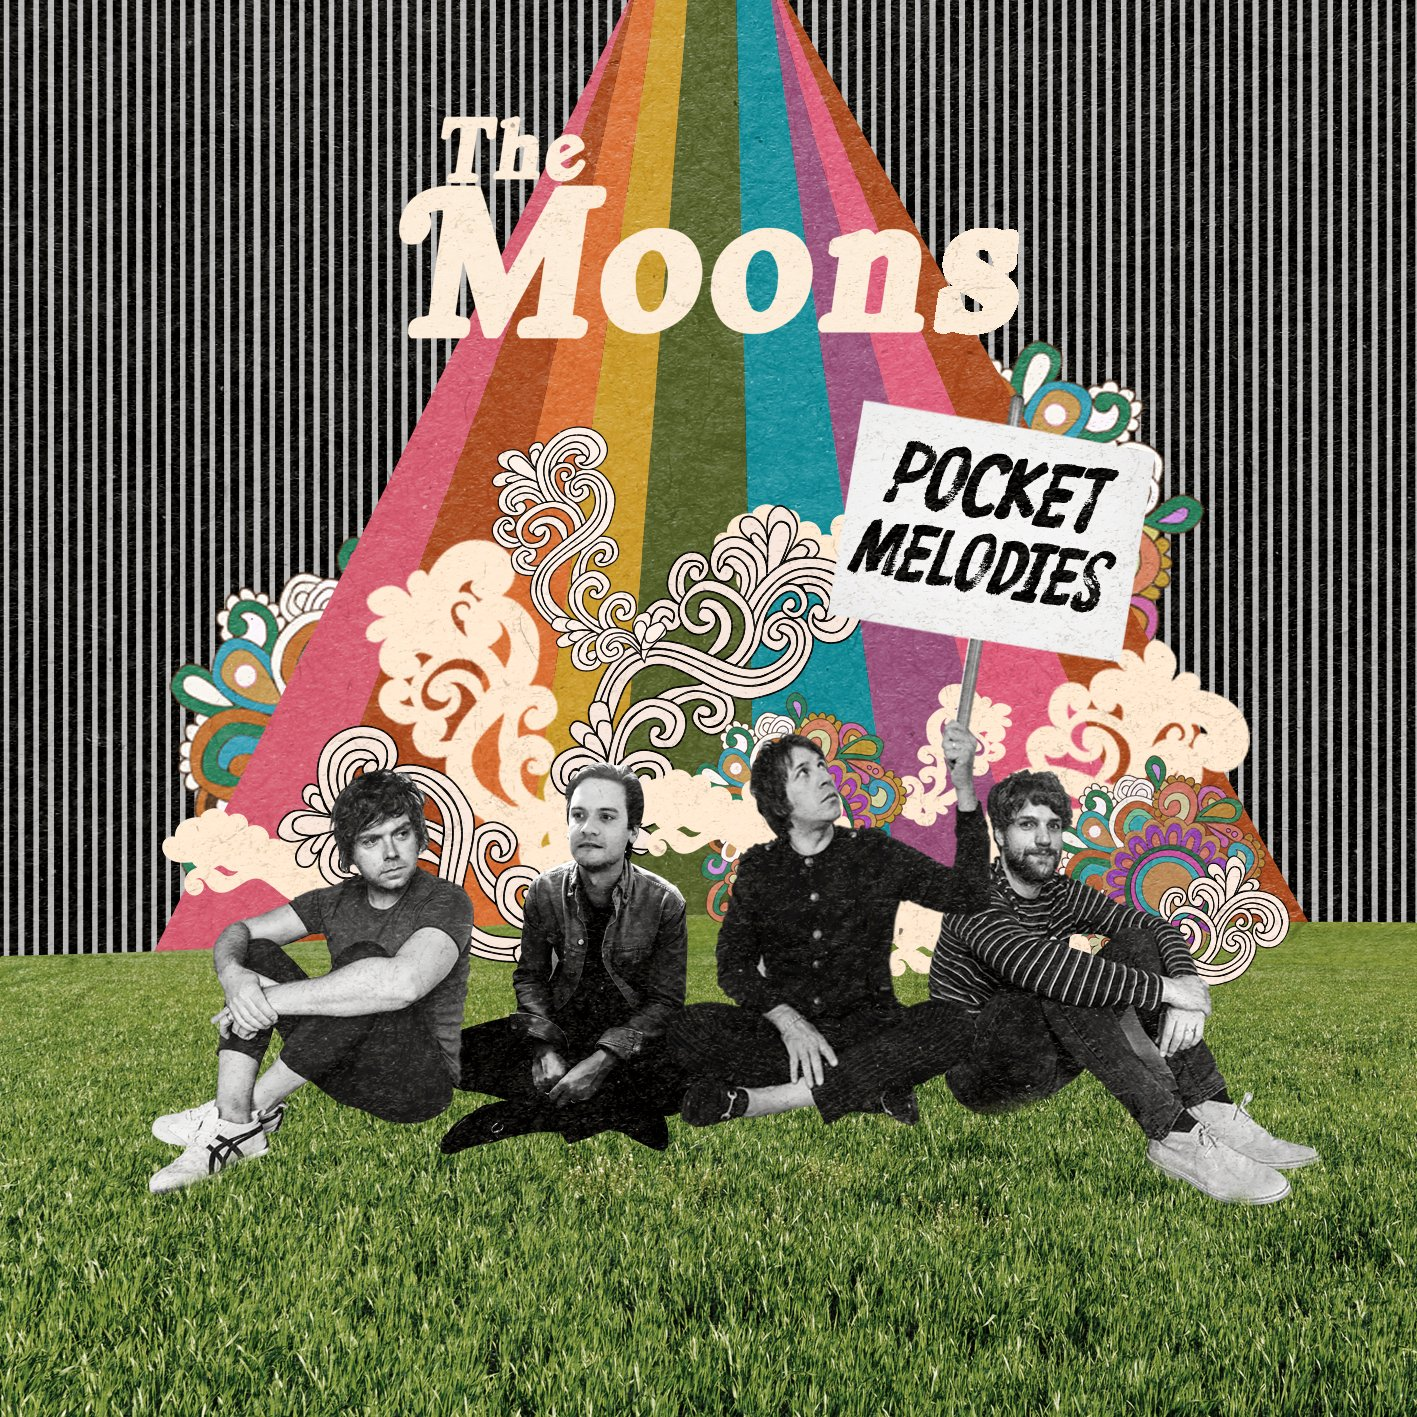 Pocket Melodies - The Moons